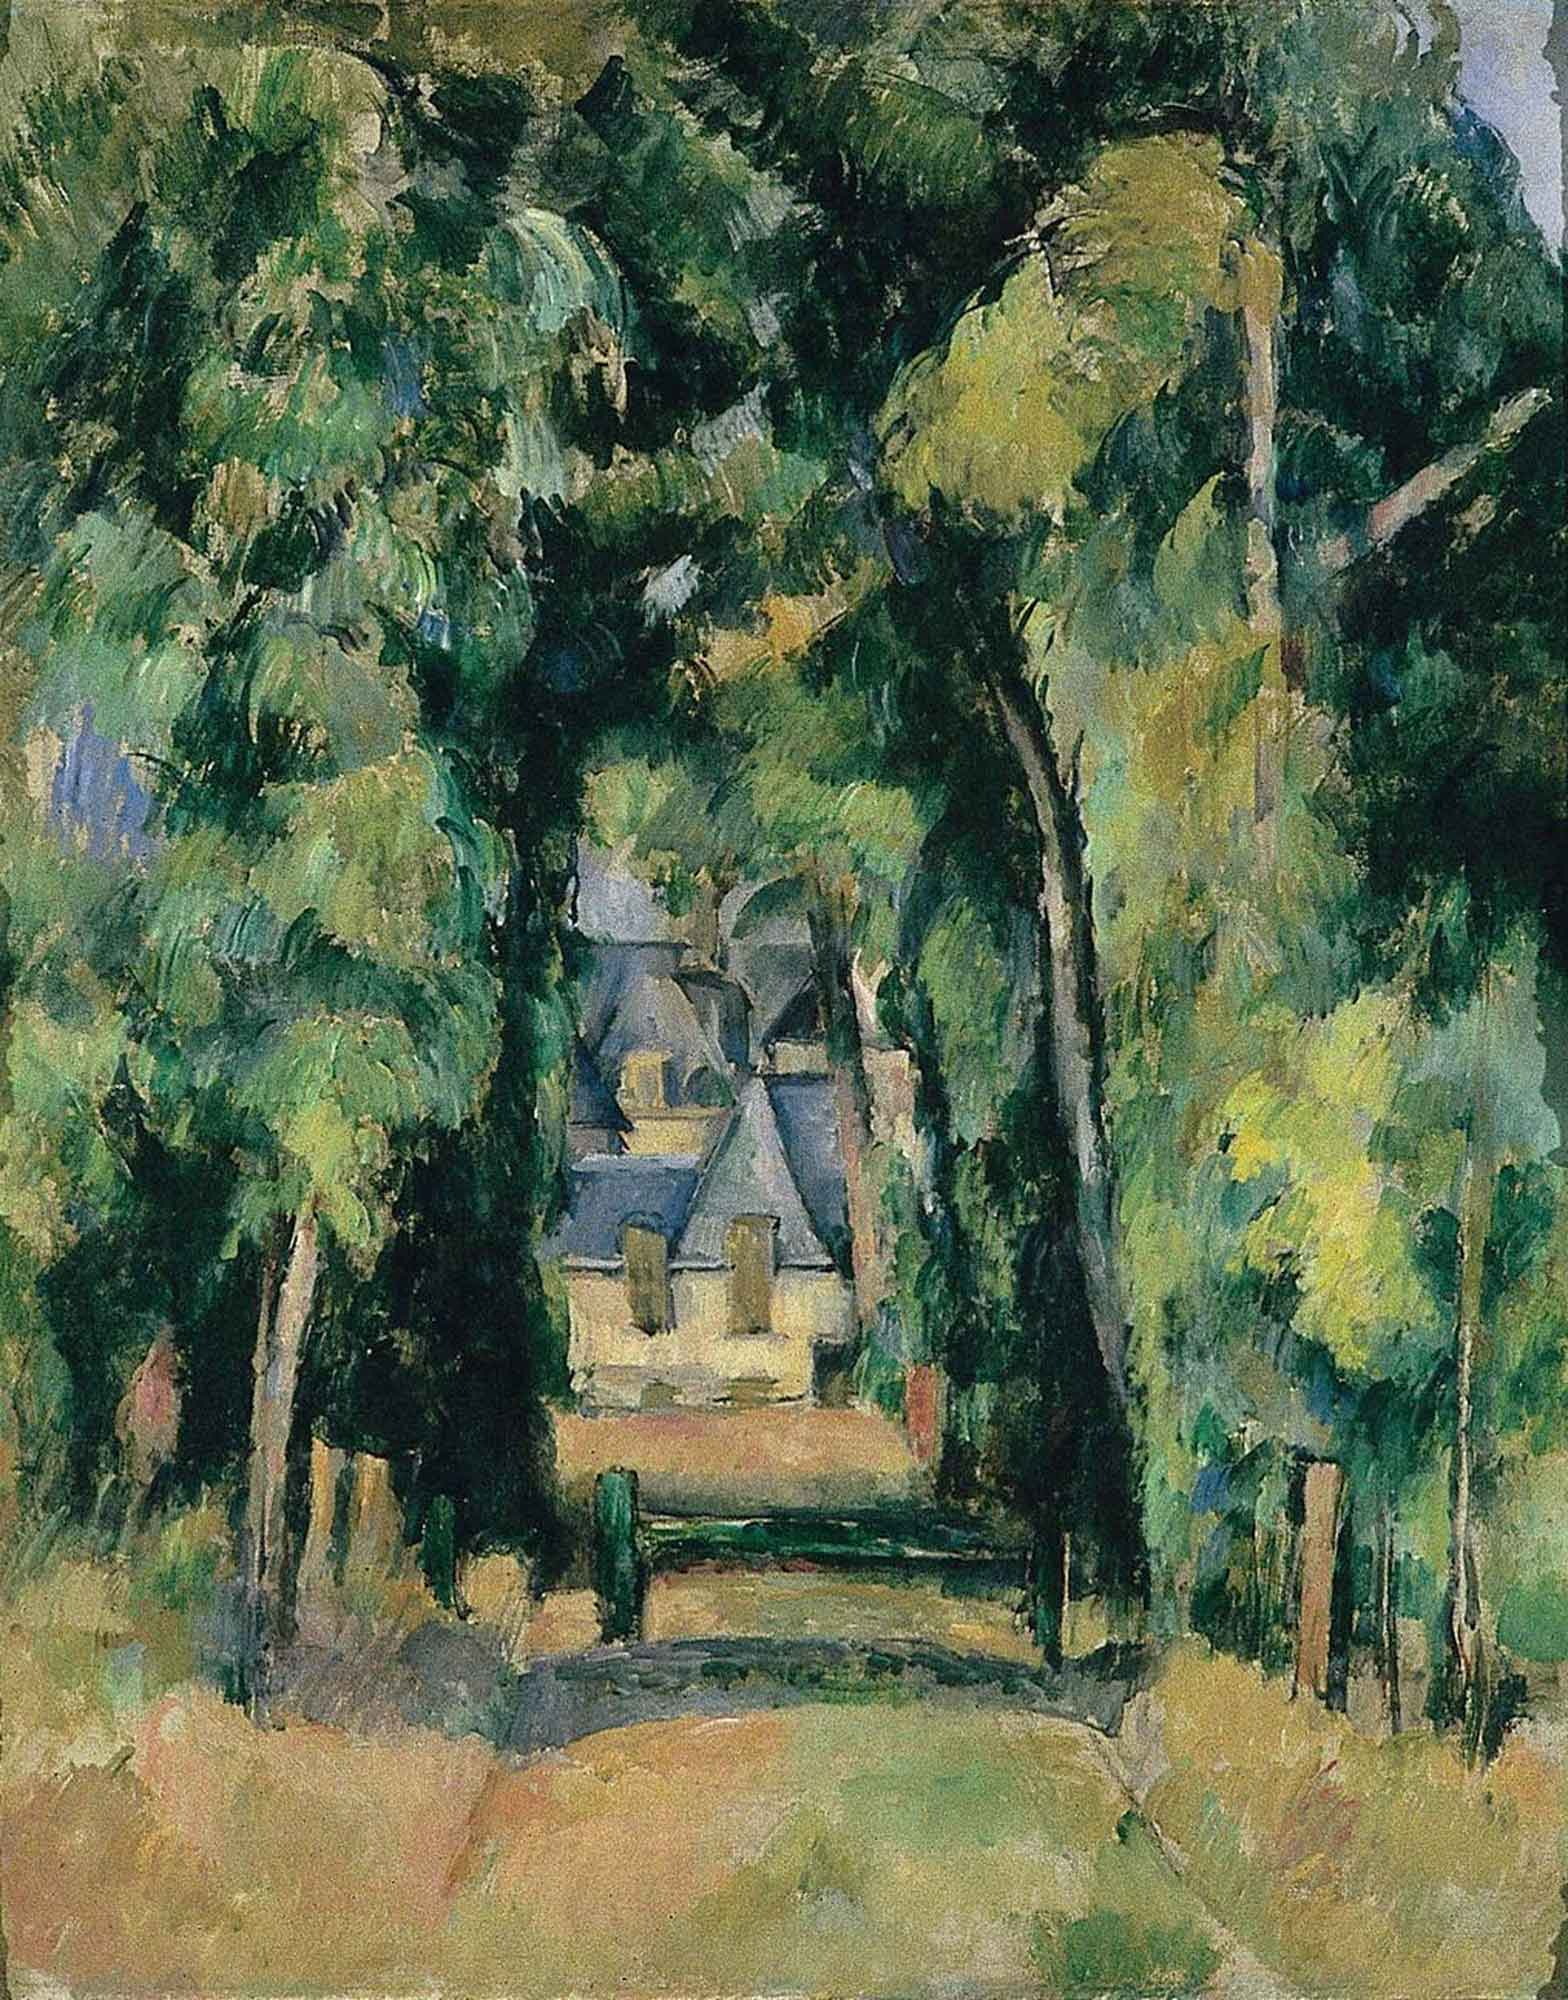 Paul Cezanne Chantilly'de Sokak